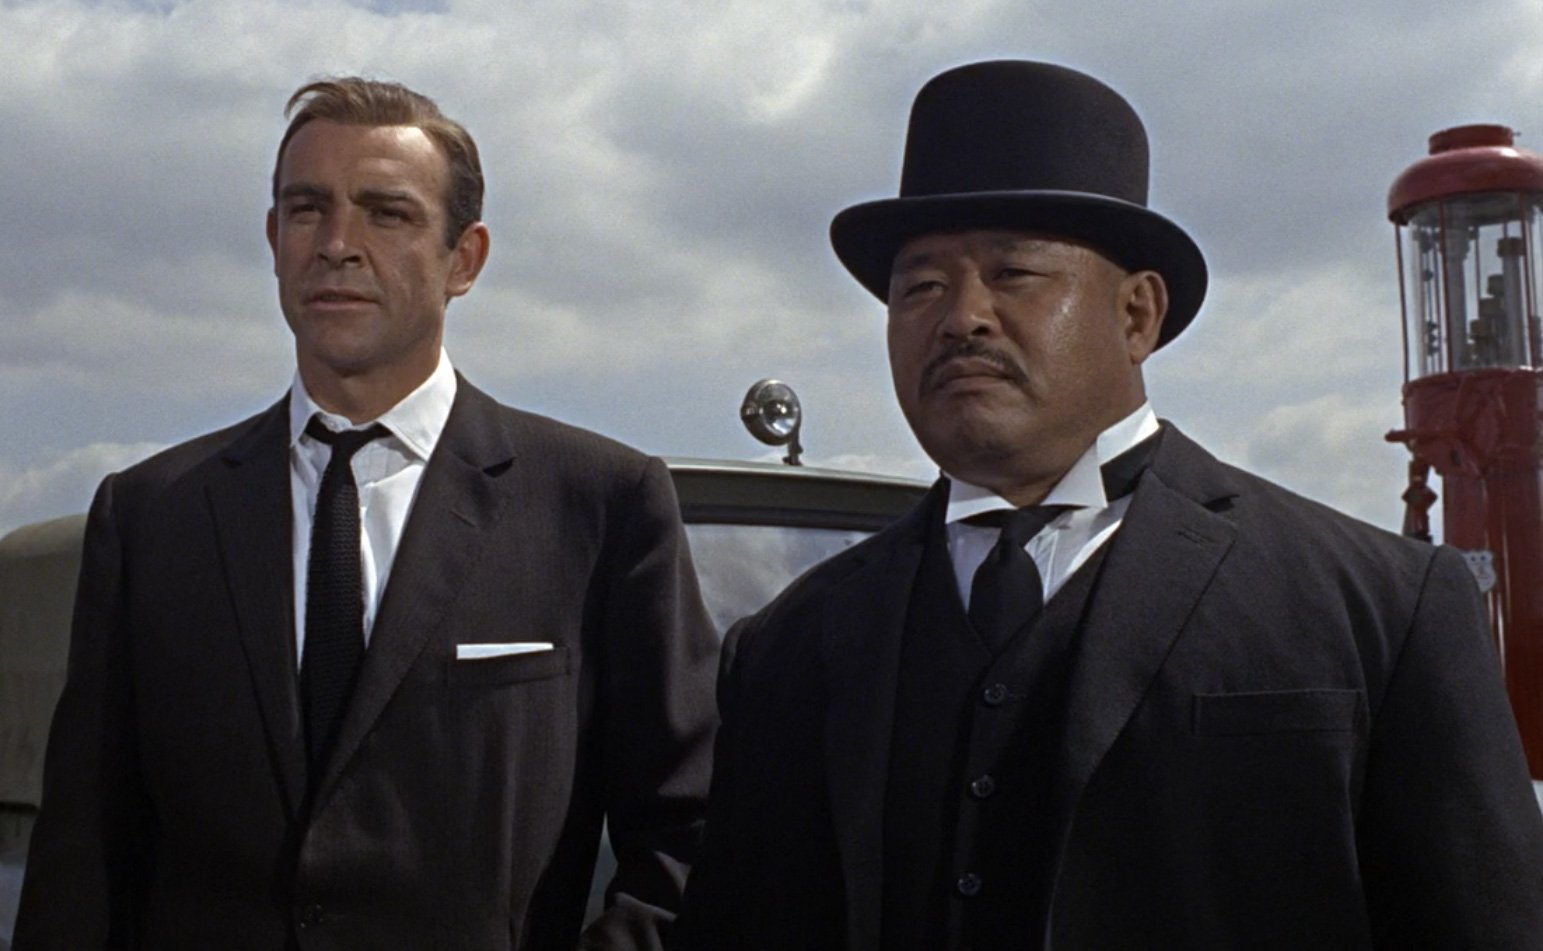 Odd Job: A Servant's Uniform –The Suits of James Bond